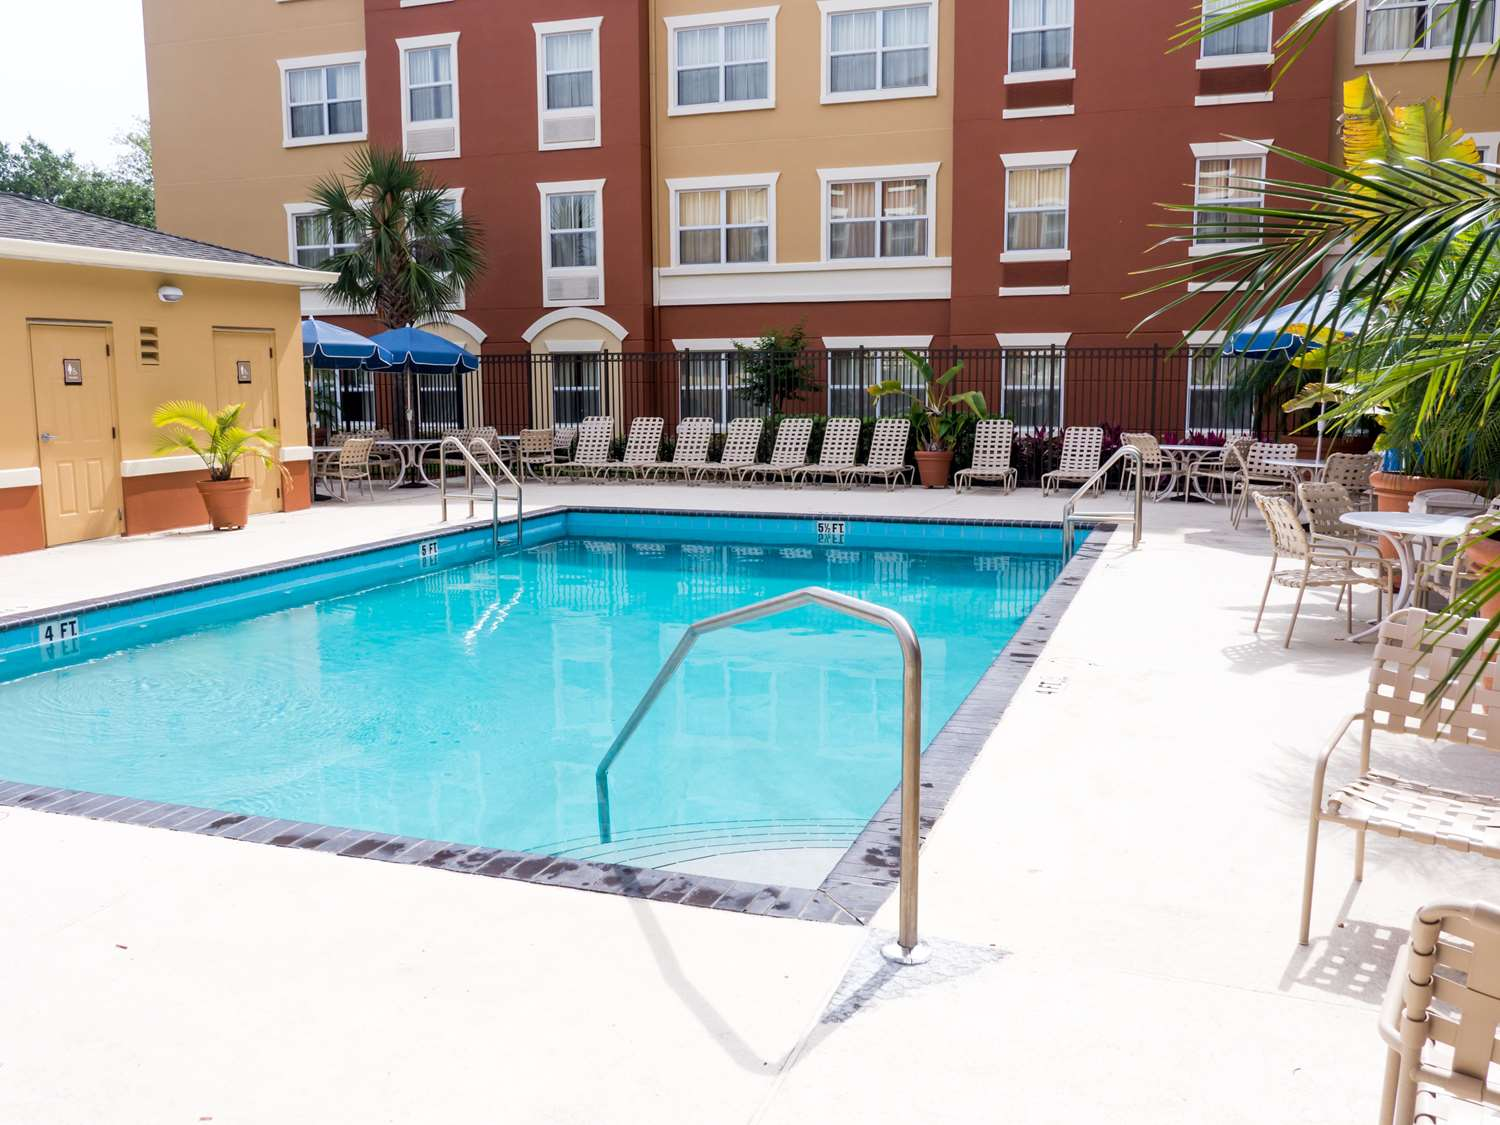 Pool - Extended Stay America Hotel 6443 Westwood Blvd Orlando